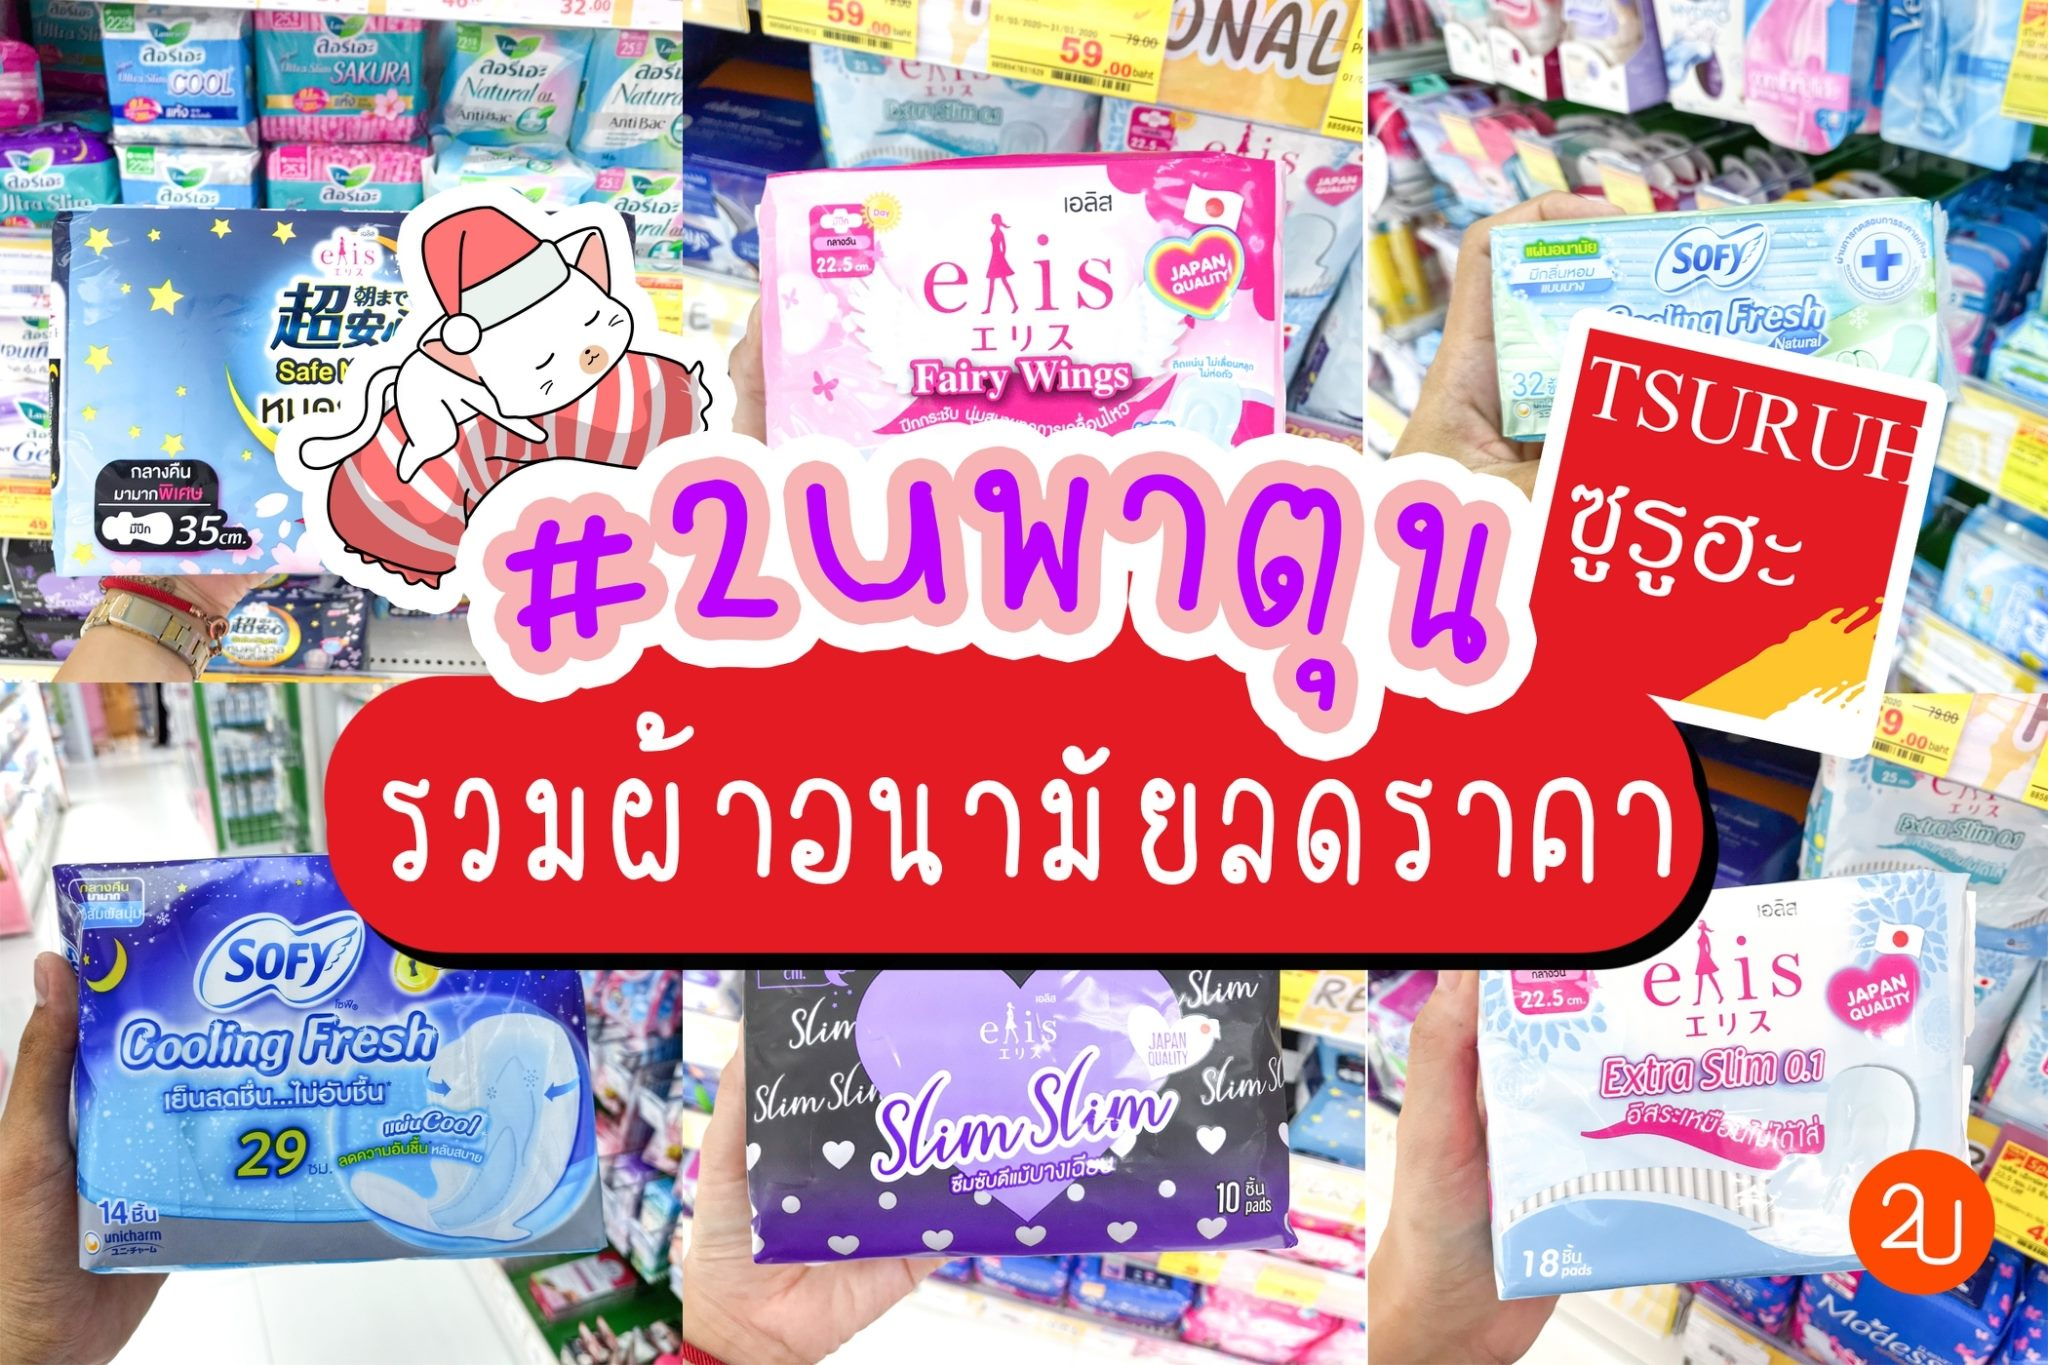 Promotion sanitary napkin sale in Tsuruha